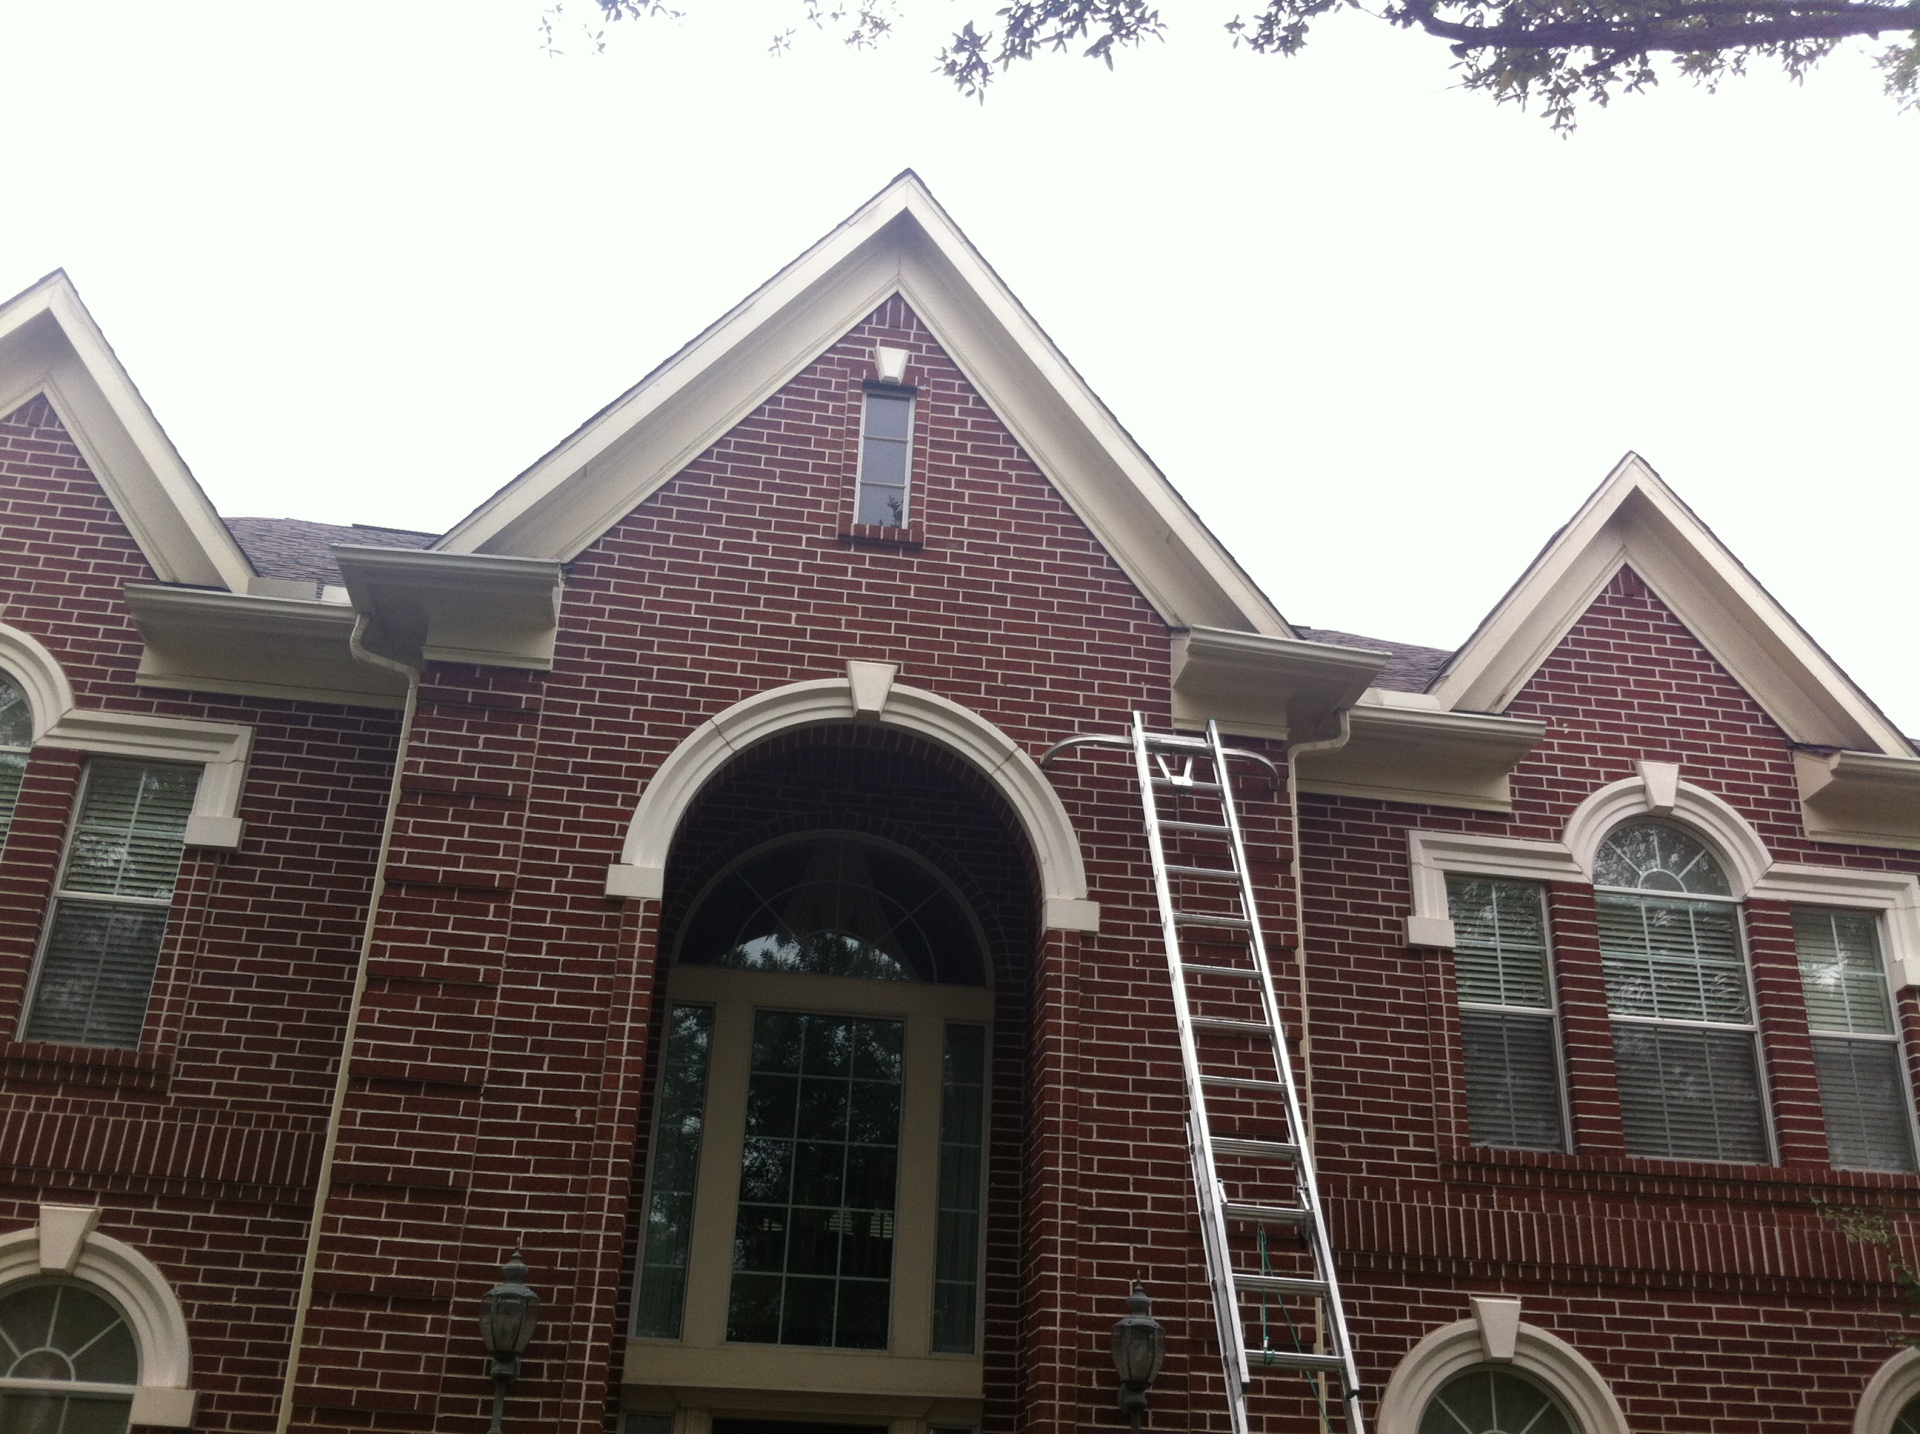 CUSTOM GUTTERS MADE SPECIFICALLY FOR YOUR HOME